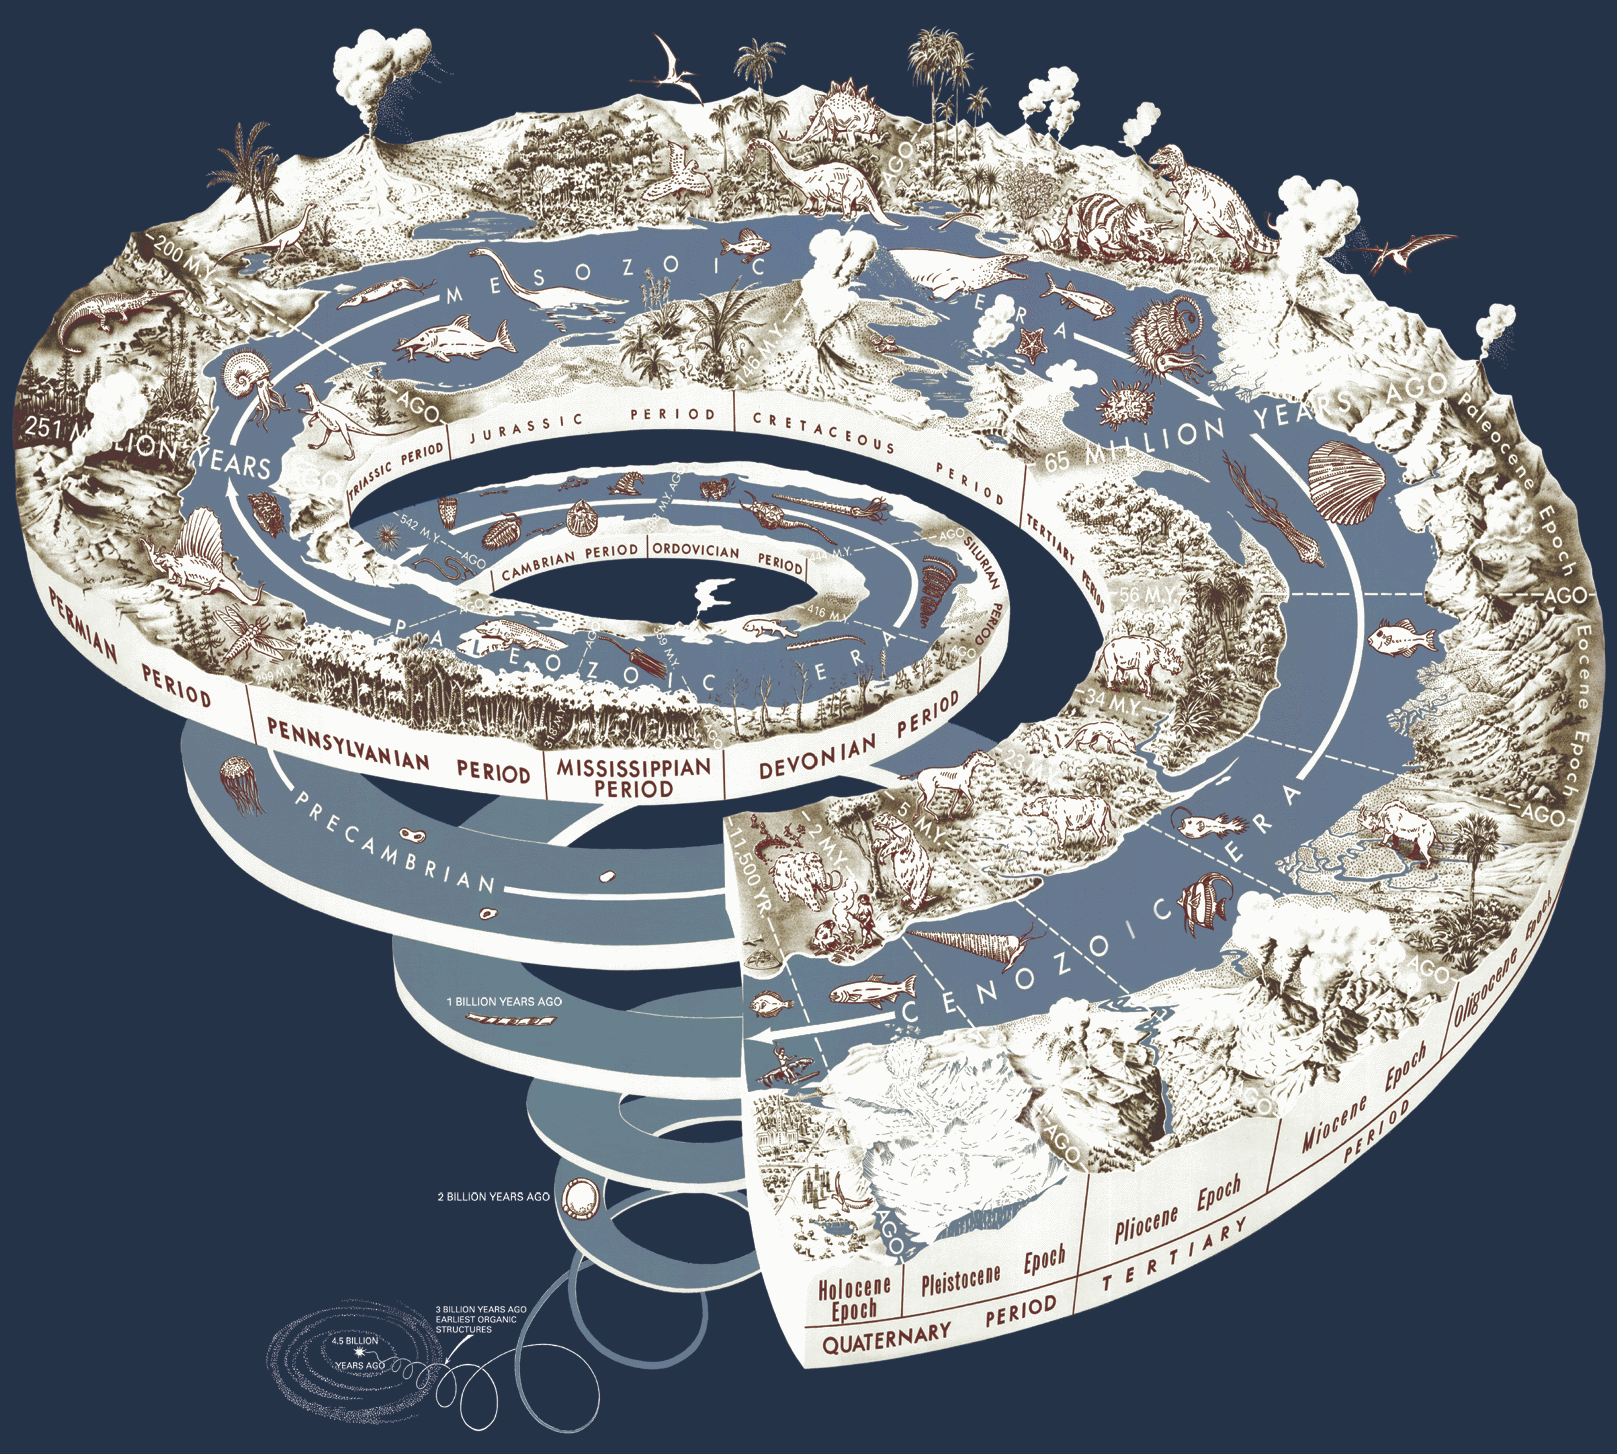 Seashell_timeline_of_Earth